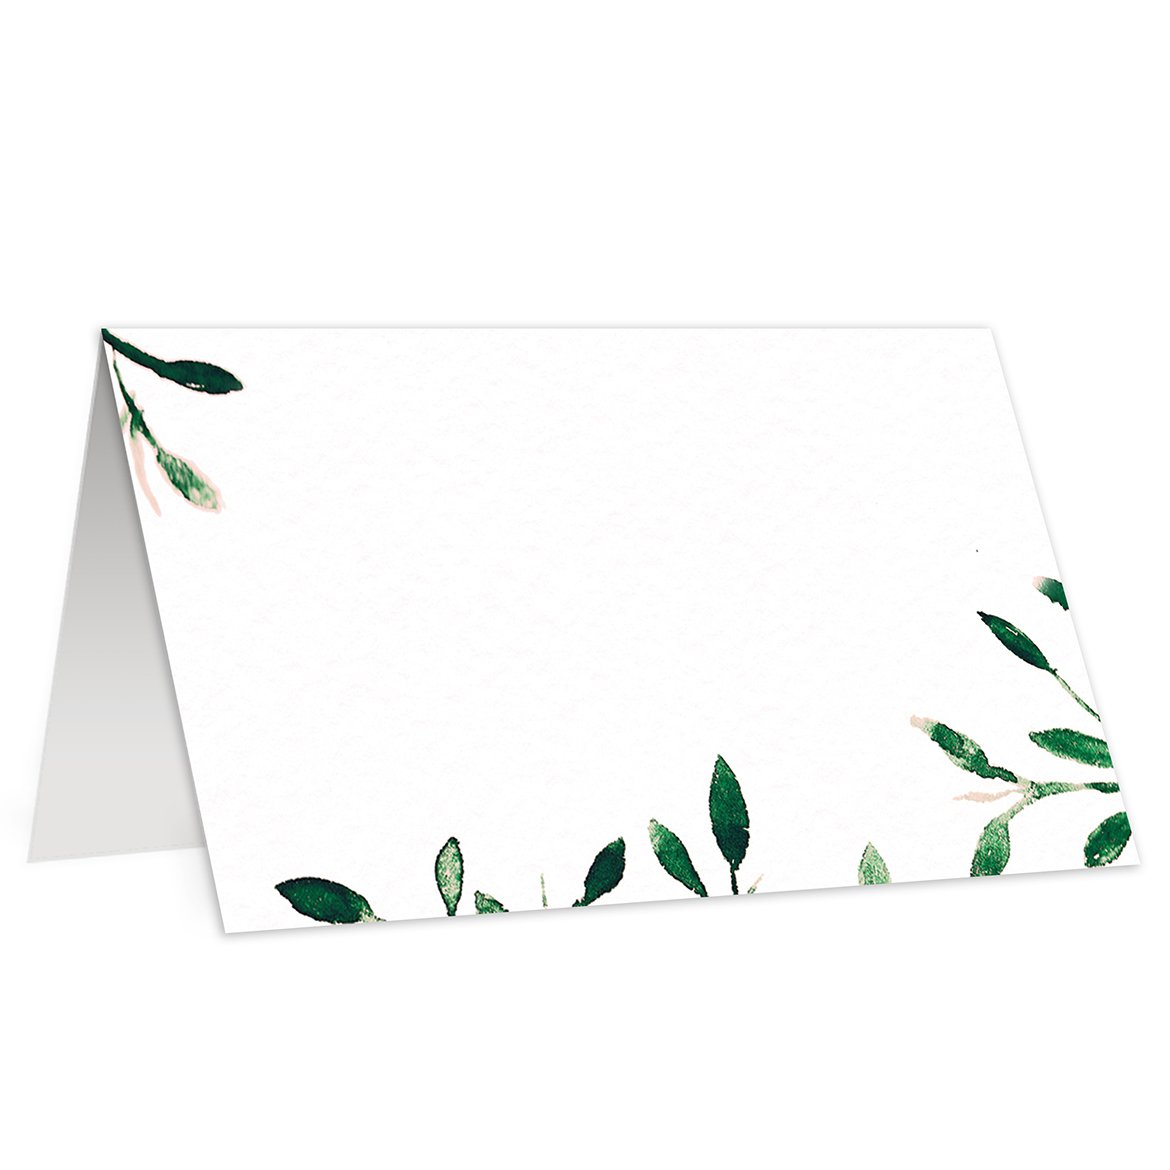 Greenery Place Cards (50 Pack) Simple Elegant Rustic Leaves Escort Cards for Wedding Catering Corporate Event Boutique Fill In Guest Name Buffet Food Sign Seat Assignment 3.5 x 2 Digibuddha